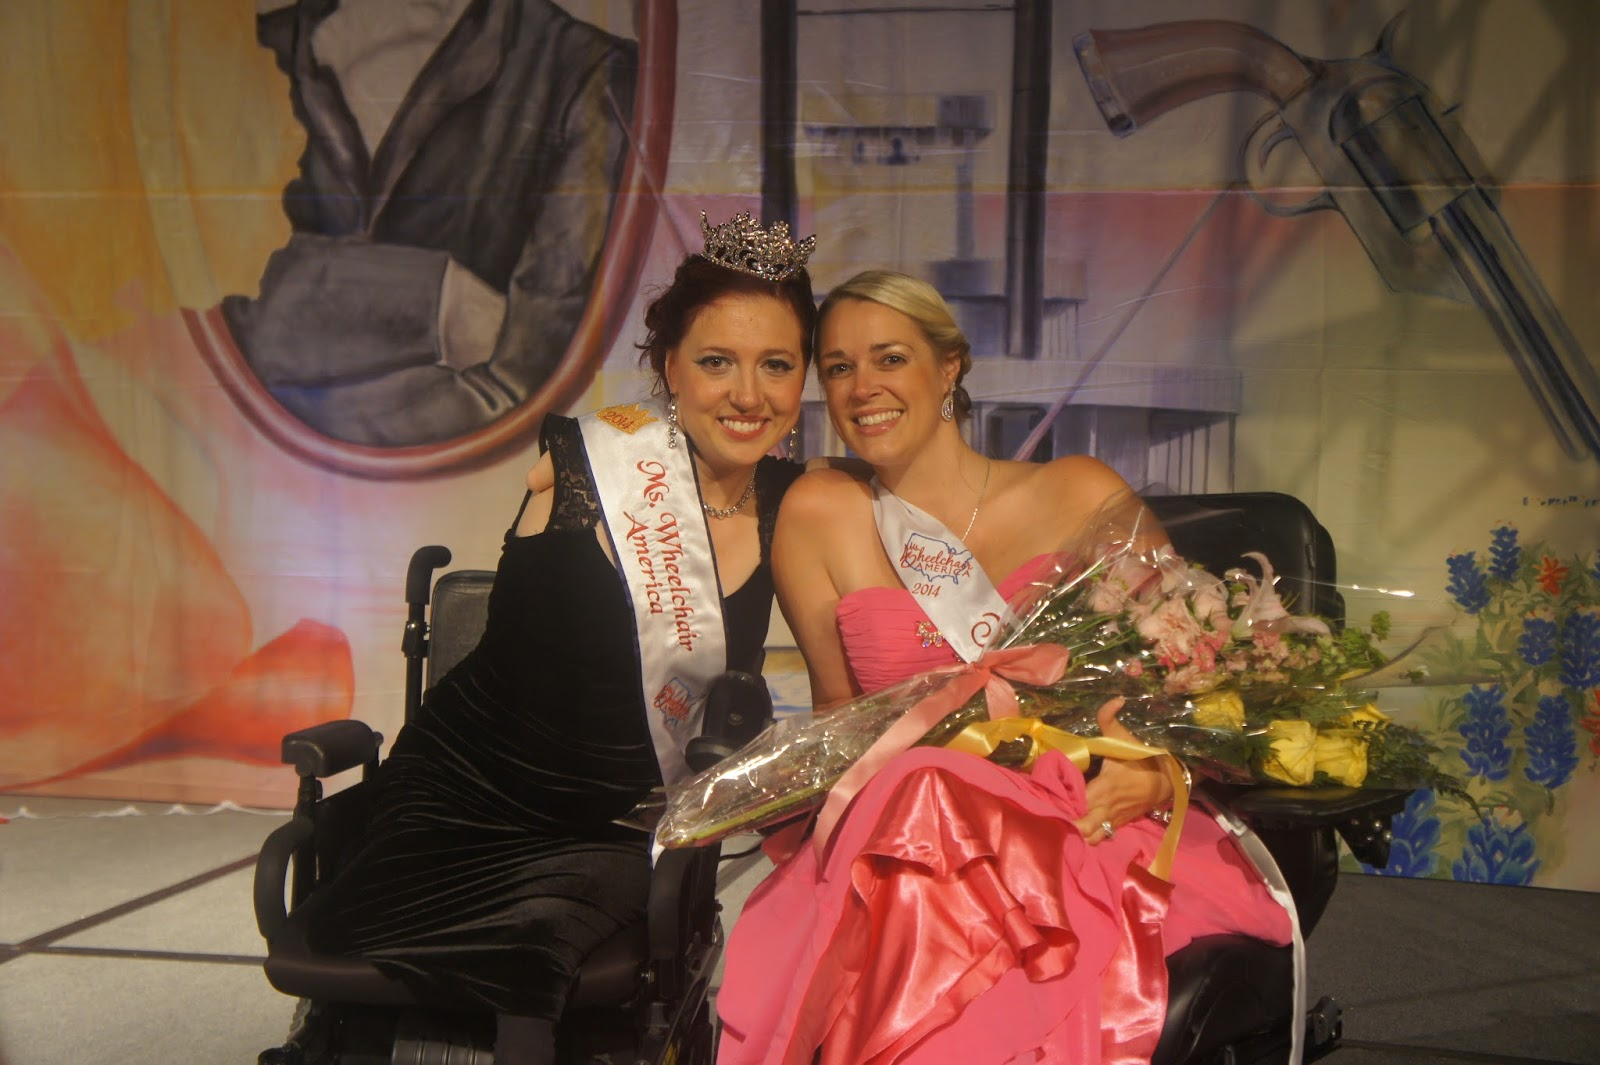 Bliss, right, with Jennifer Adams, Ms. Wheelchair America 2014